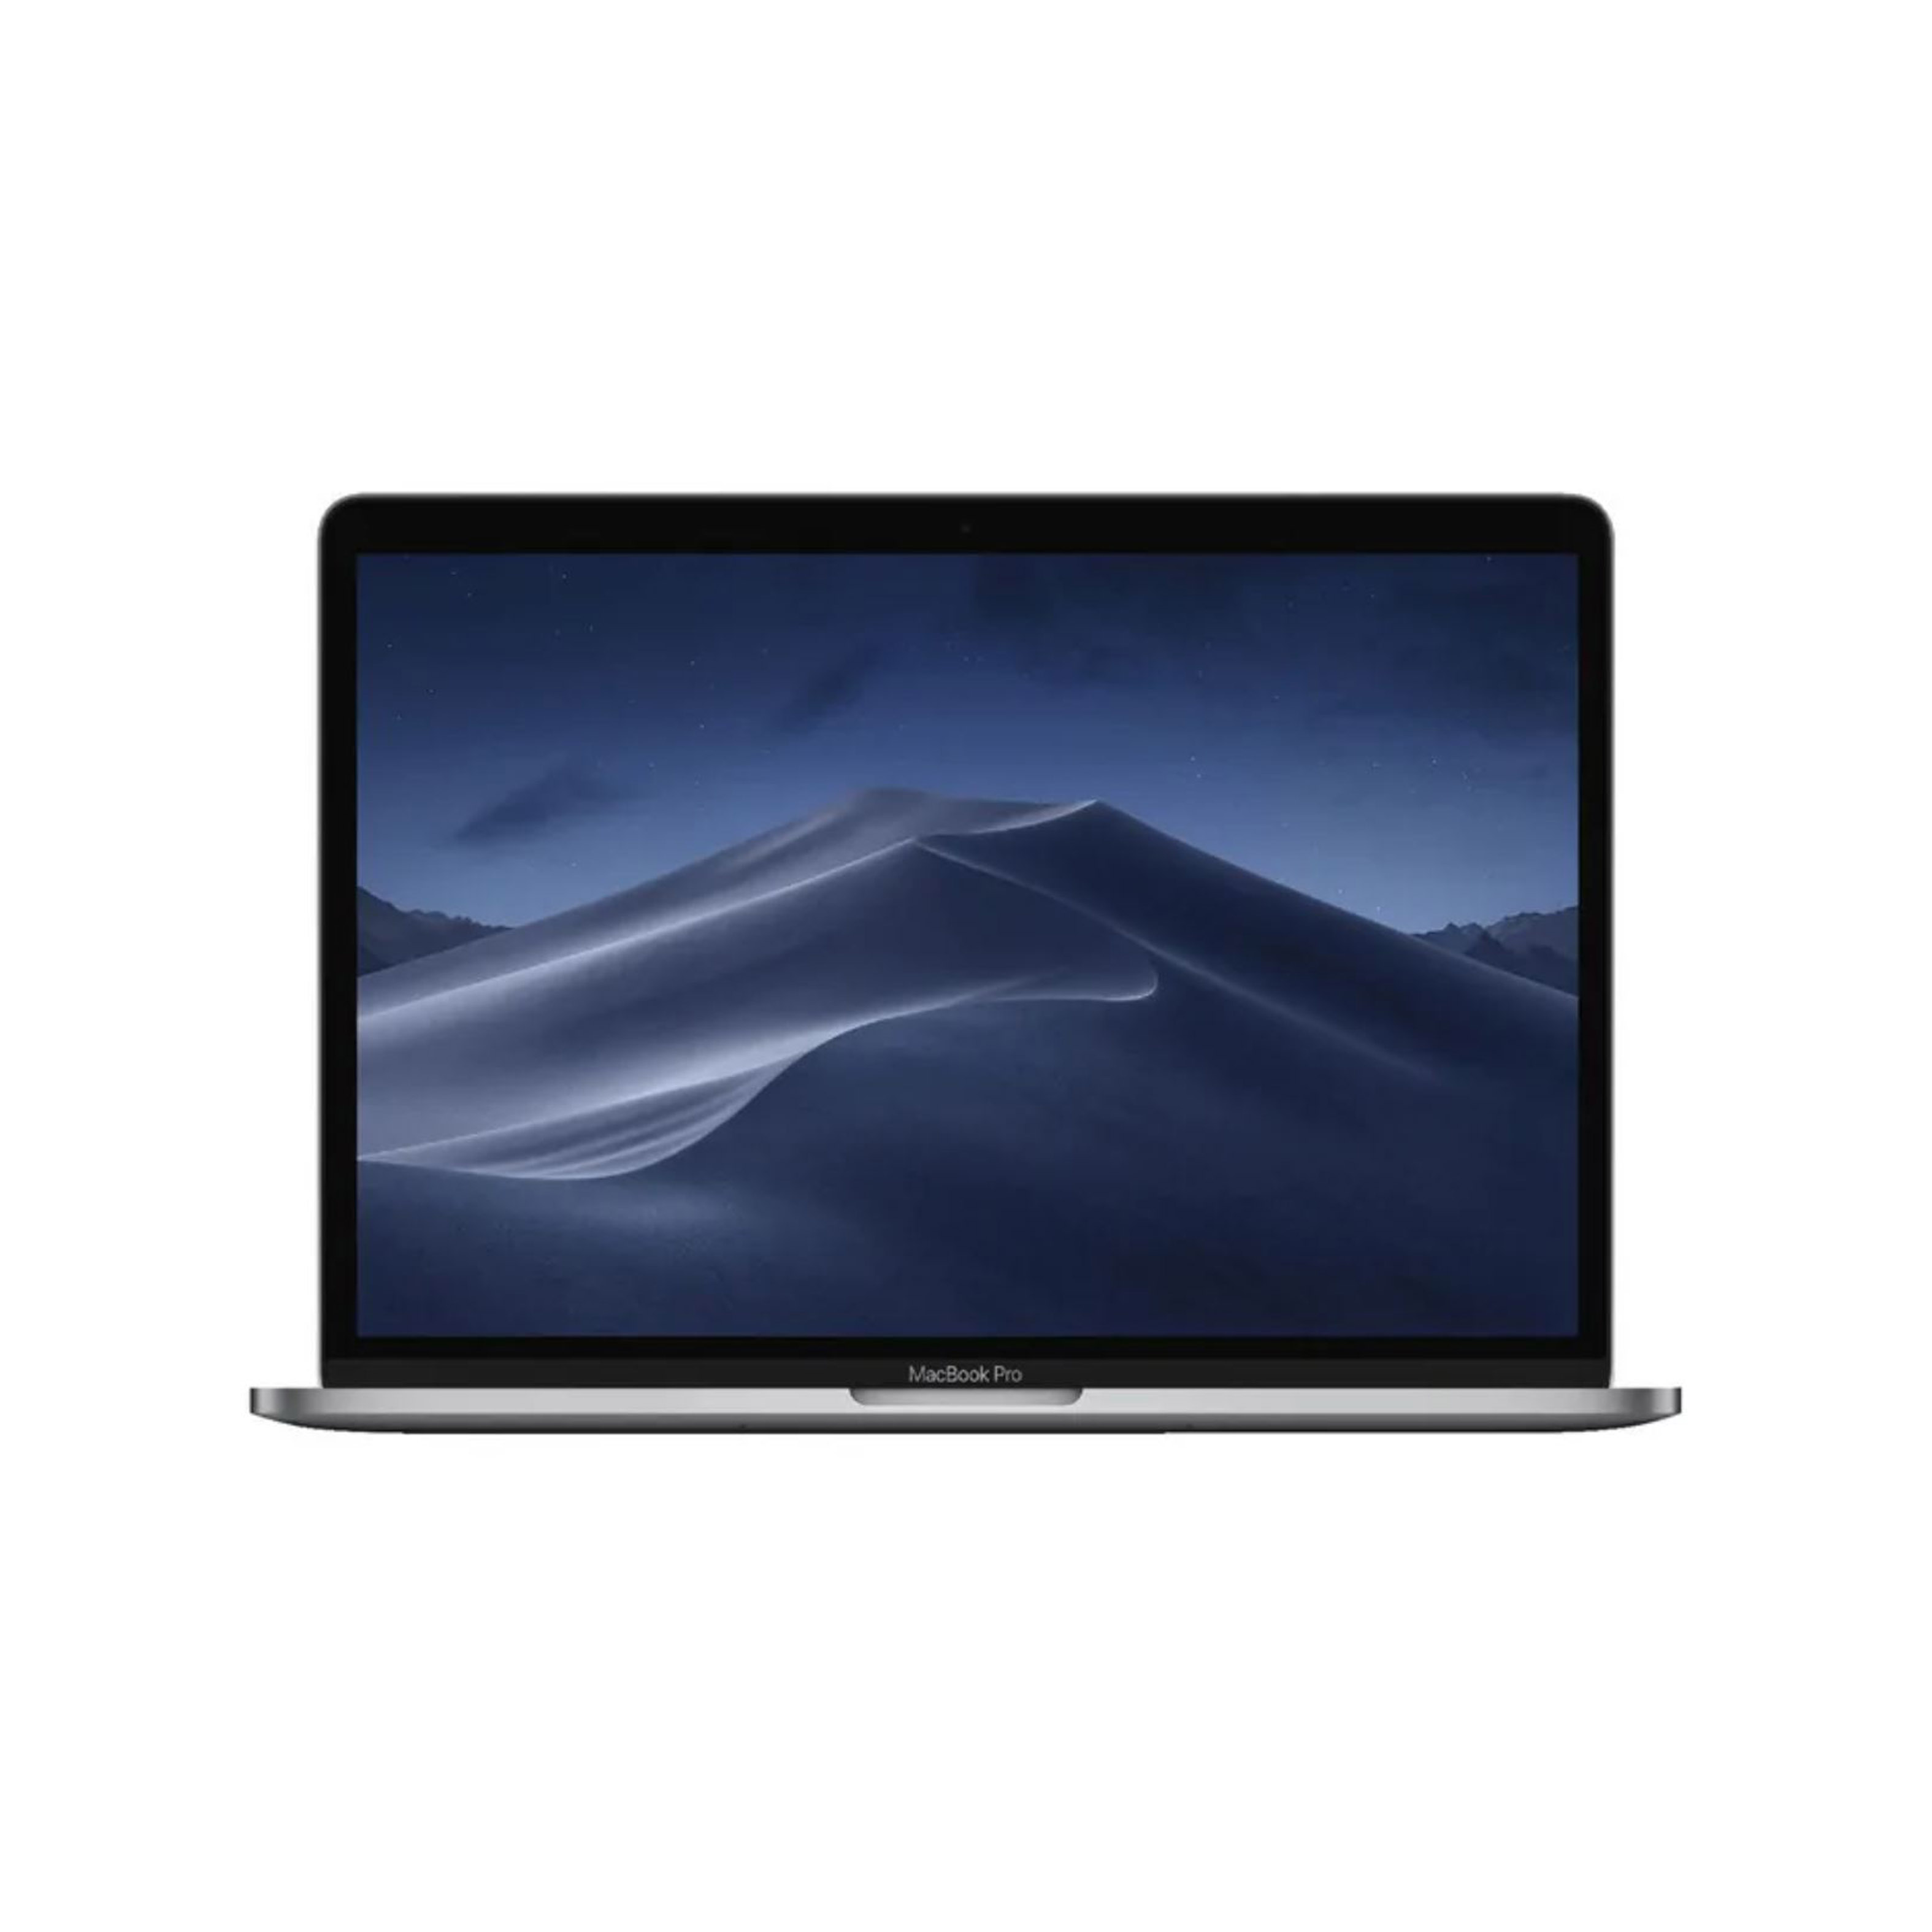 Apple 13in MacBook Pro - 2.0GHz 10th Gen Intel i5 512GB - Space Grey (MWP42X/A)